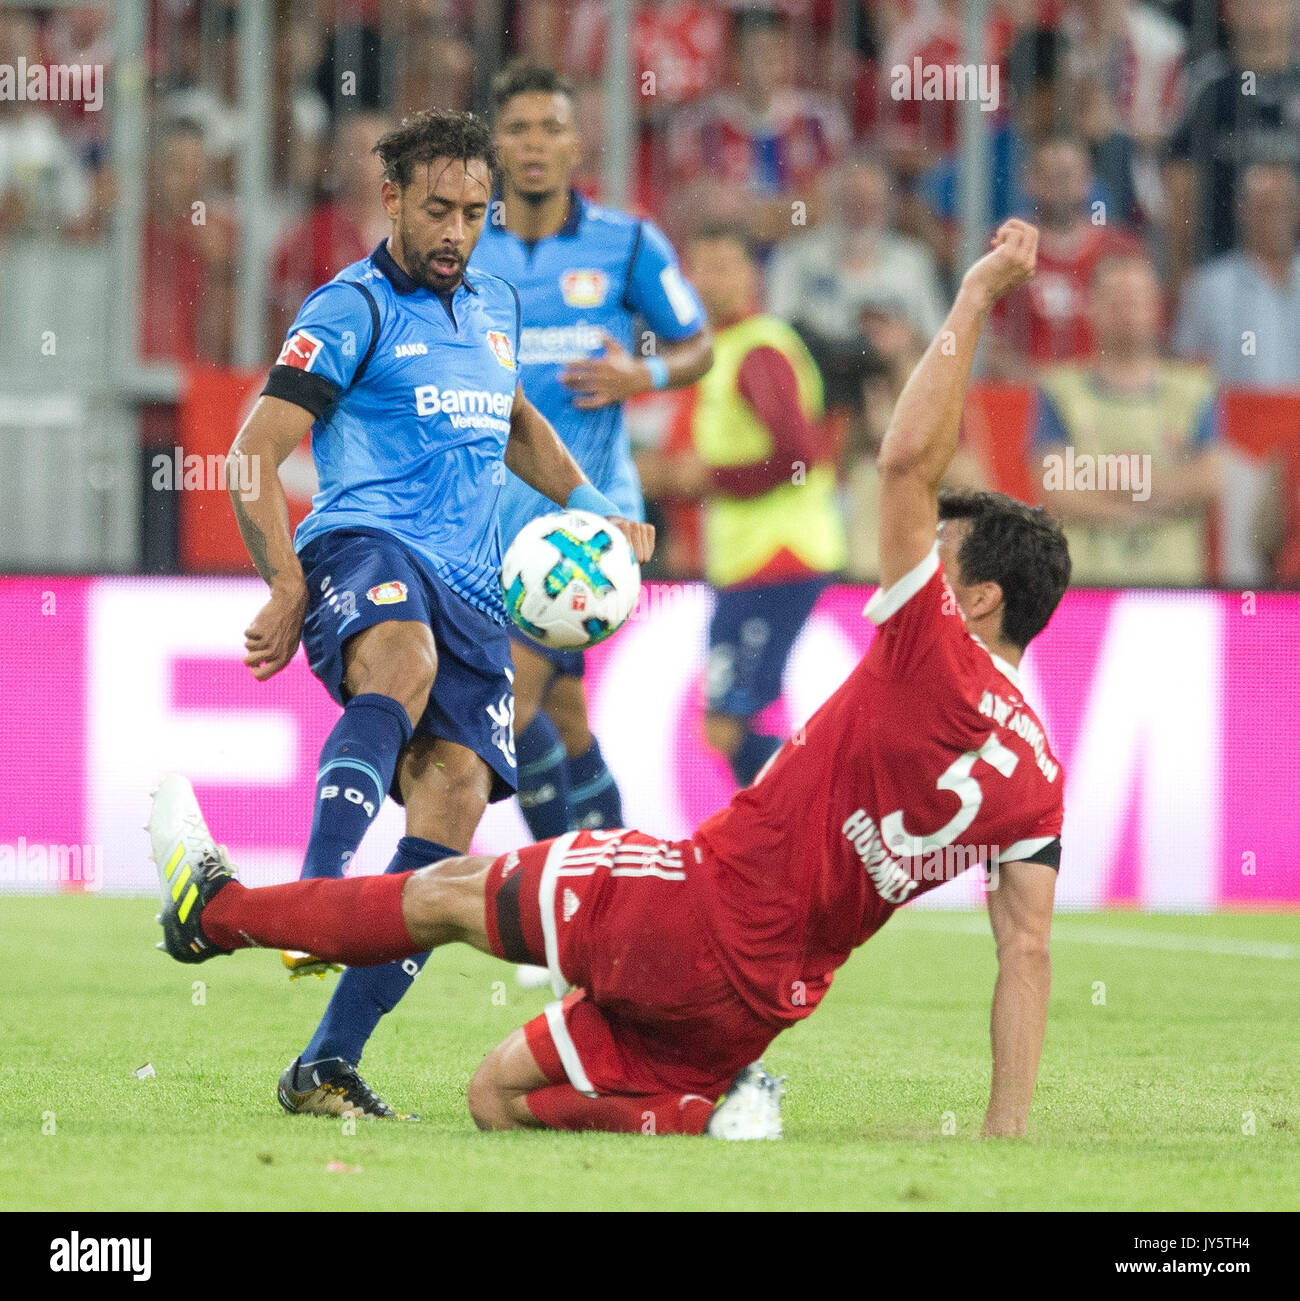 Deutschland. 18th Aug, 2017. Karim BELLARABI (Leverkusen) im Zweikampf mit Mats HUMMELS (FC Bayern) GES/ Fussball/ 1. Bundesliga: FC Bayern Munich - Bayer 04 Leverkusen, 18.08.2017 -- Football/ Soccer 1st. German Bundesliga Division: Bavaria Munich vs Bayer 04 Leverkusen, Munich, August 18, 2017 | Verwendung weltweit Credit: dpa/Alamy Live News - Stock Image